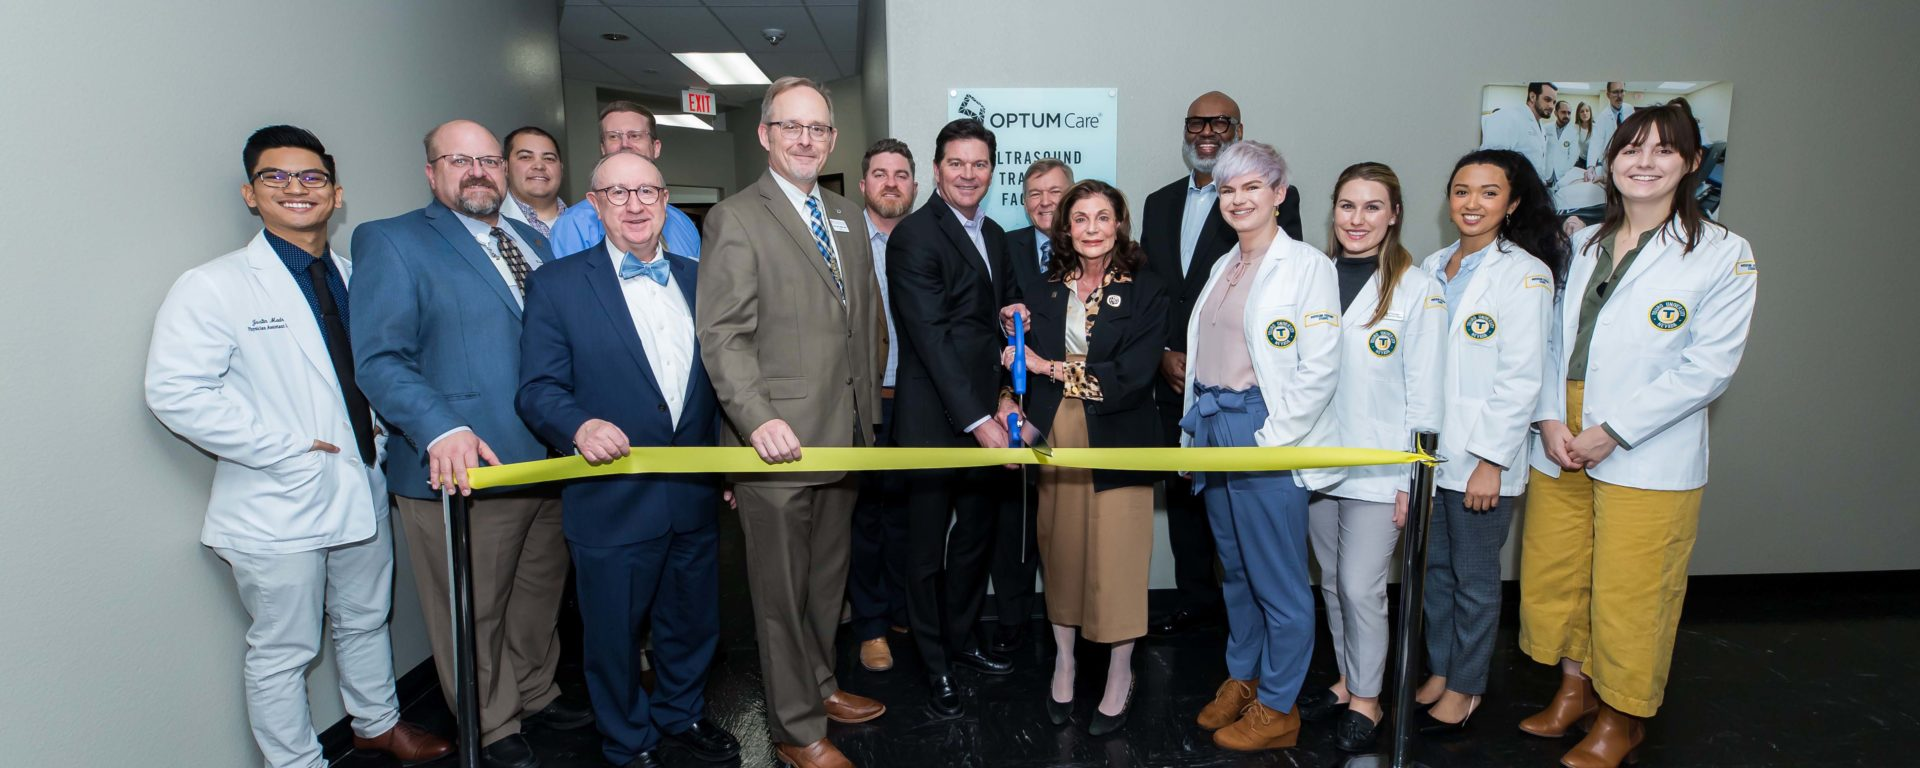 A special ribbon cutting was held to celebrate the center's grand opening and was attended by the Touro College and University System Leadership, Dr. Robert McBeath, President of OptumCare Nevada, several healthcare professionals and students, and members of the Southern Nevada community.